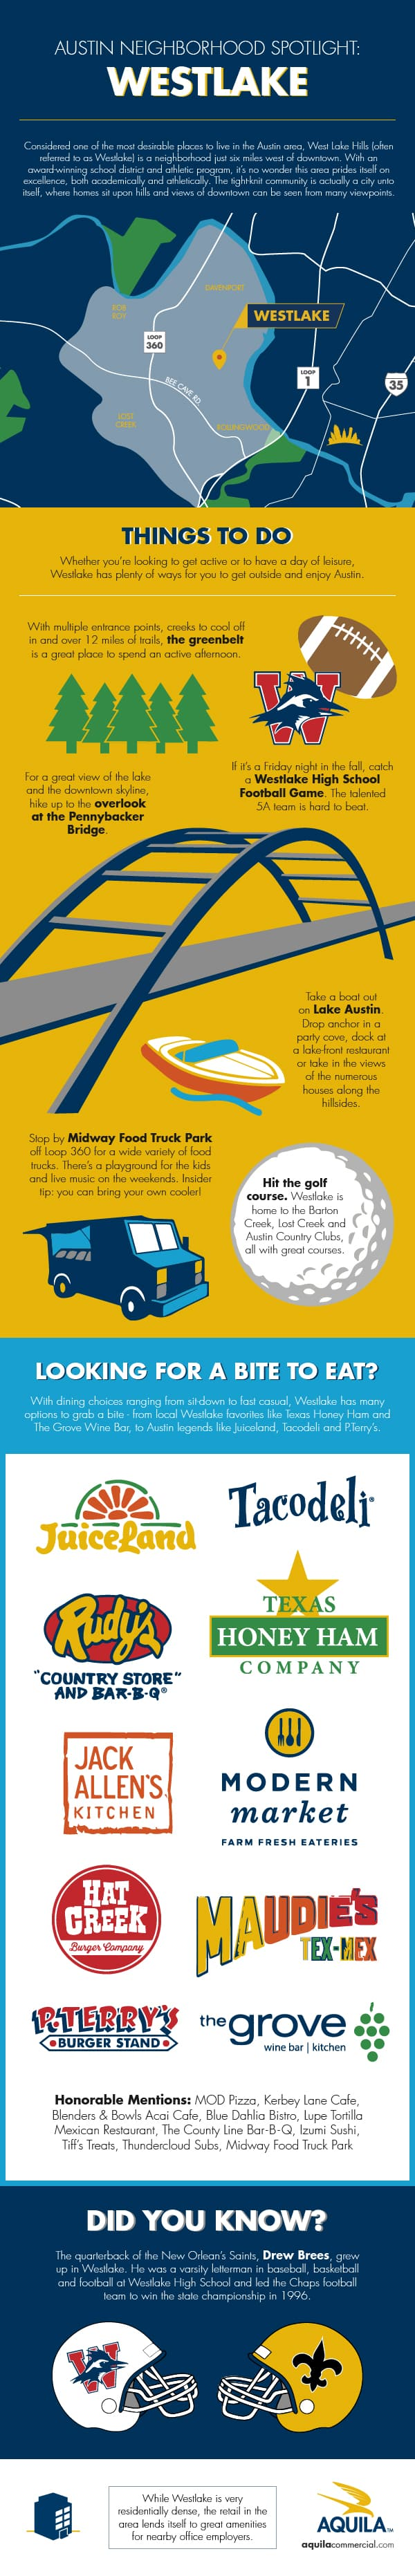 Infographic: Best of Westlake, Texas, What to do, Where to Eat, Best Restaurants (West Lake Hills outside of Austin)